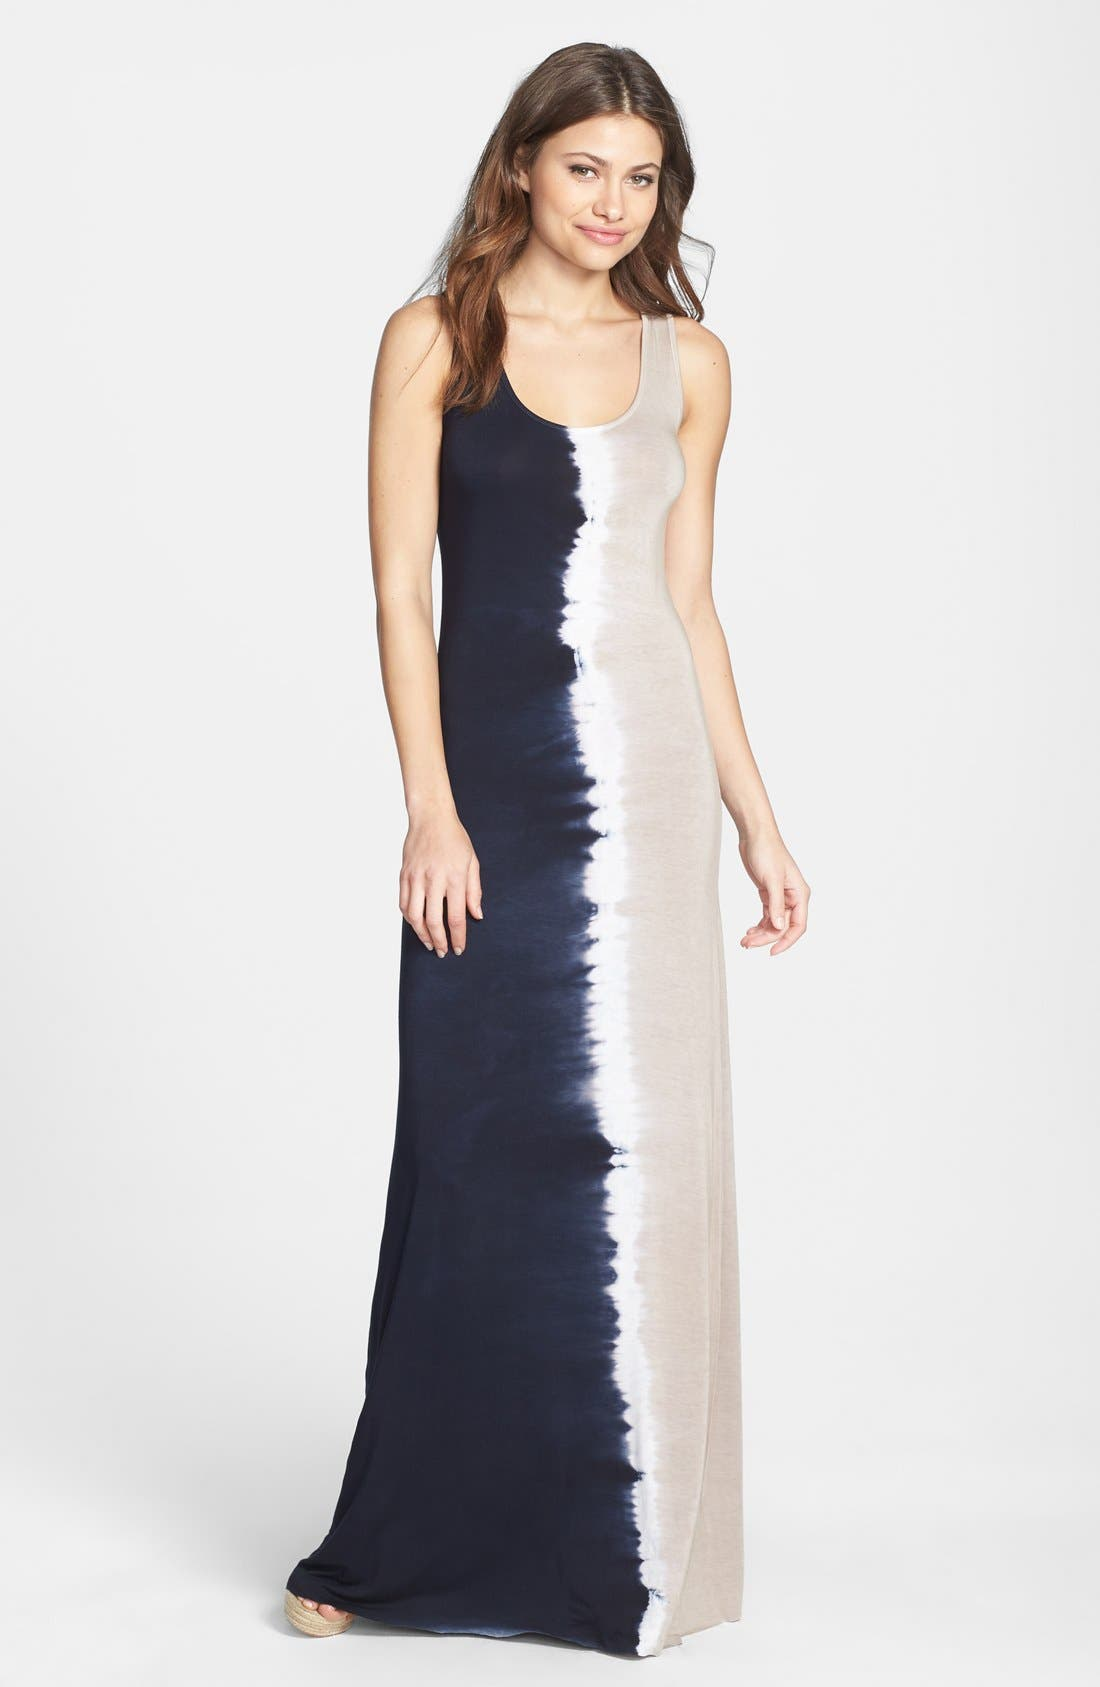 Alternate Image 1 Selected - Felicity & Coco Tie Dye Jersey Maxi Dress (Petite) (Nordstrom Exclusive)